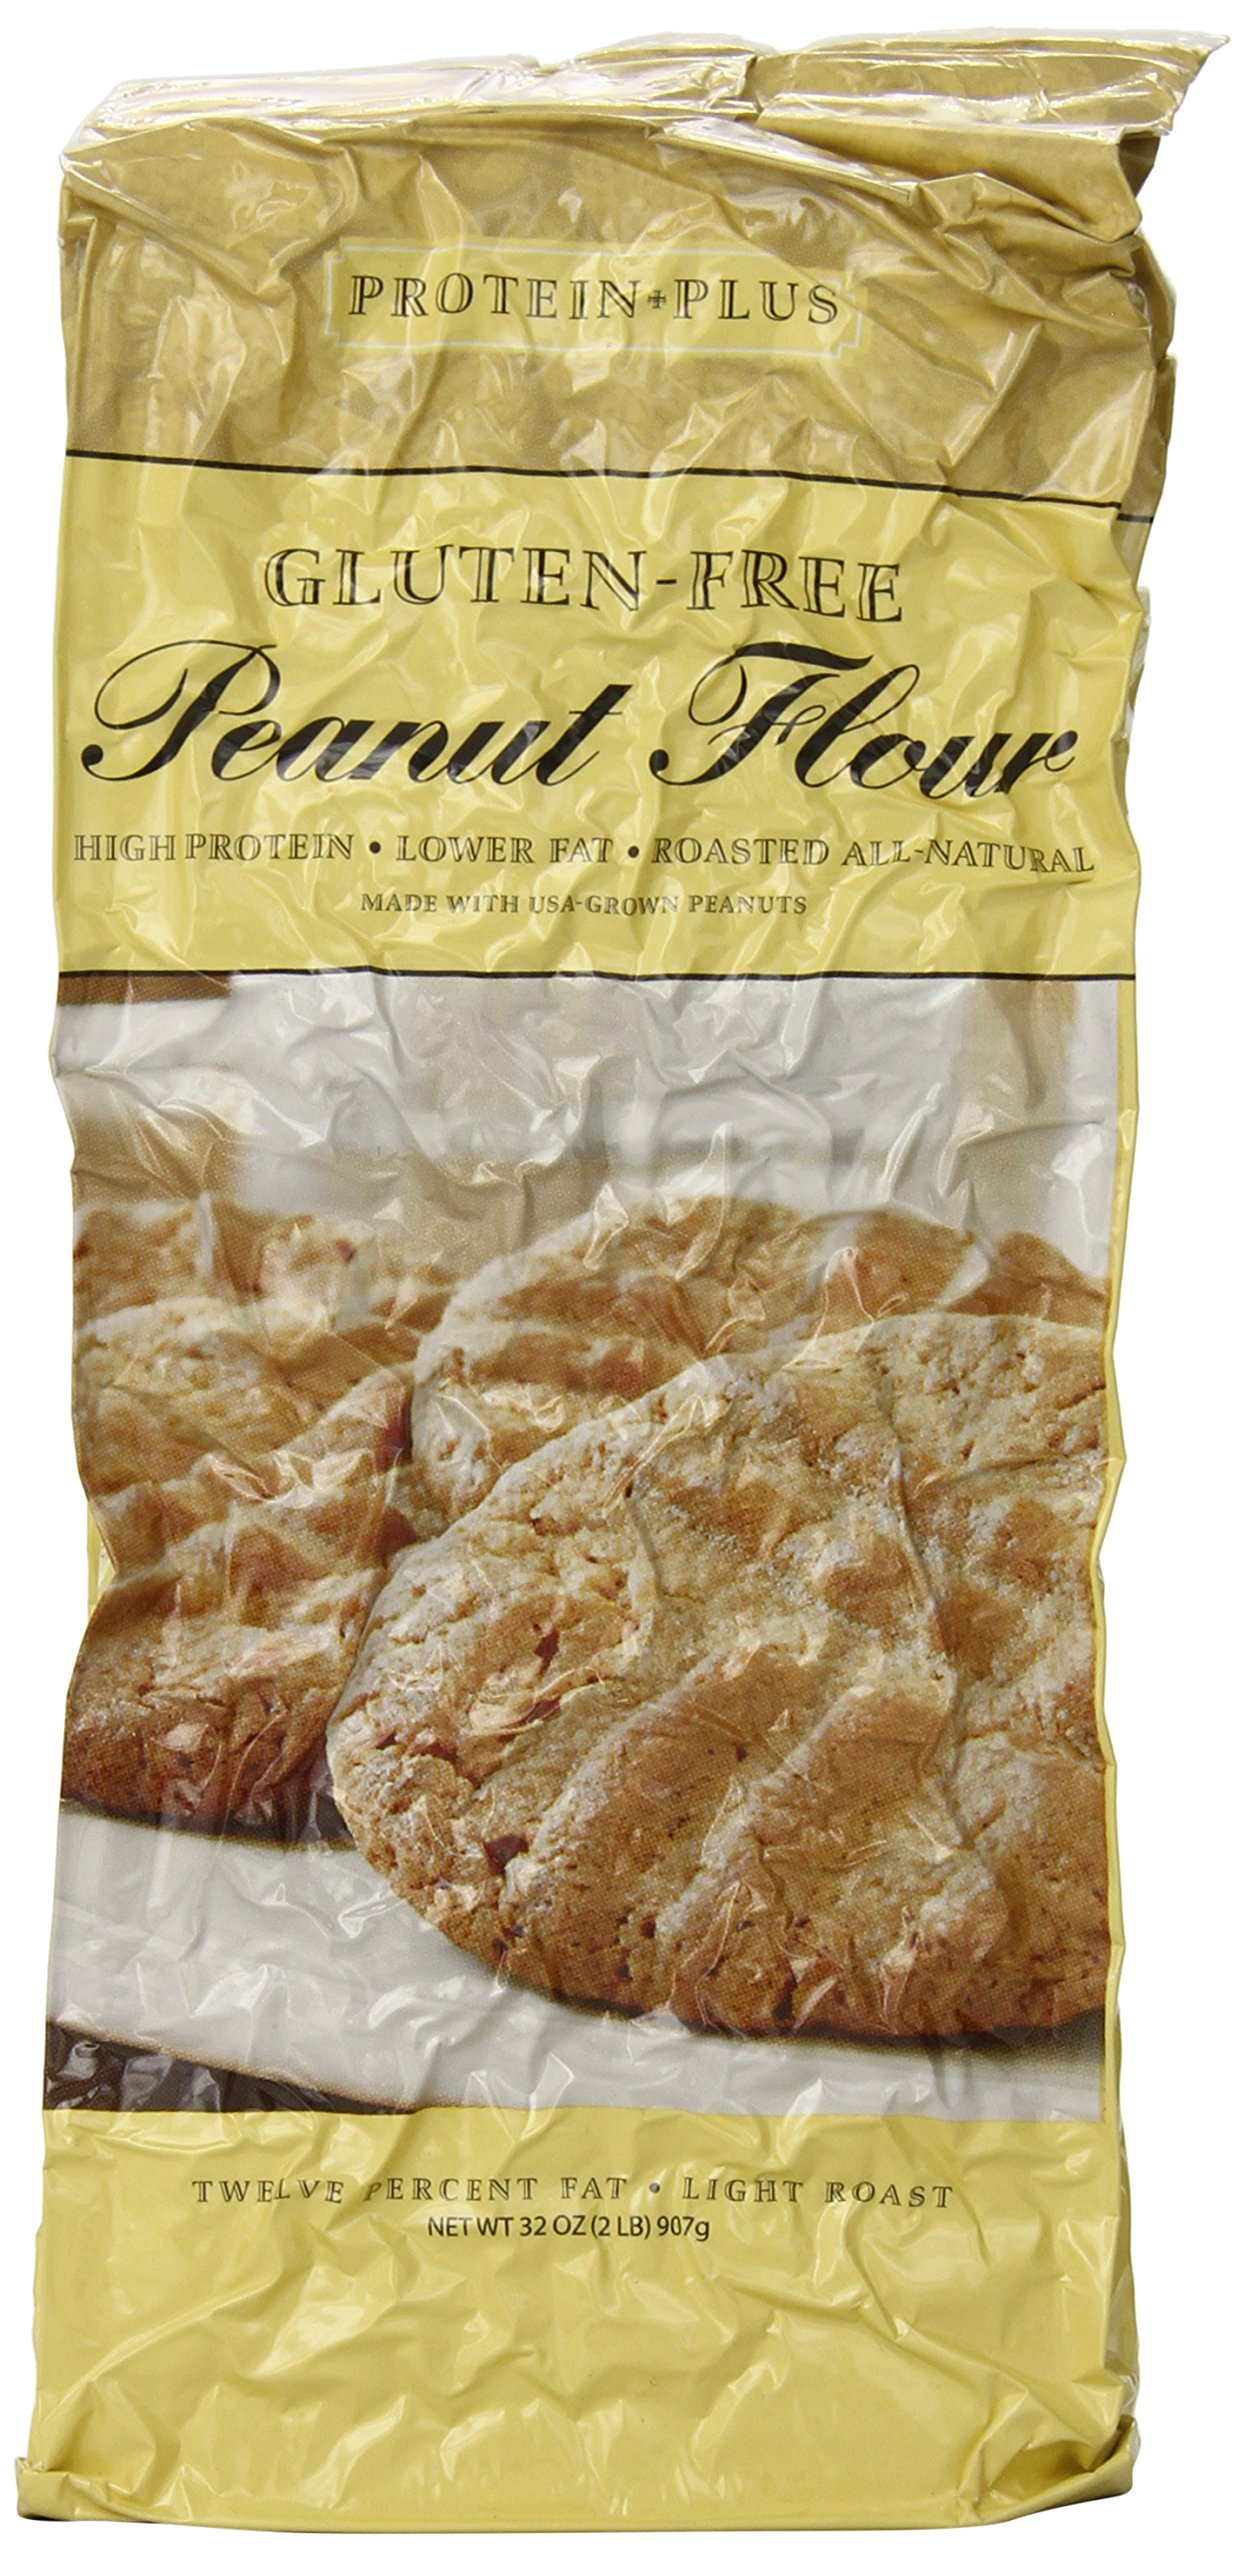 Protein Plus - Roasted All Natural Peanut Flour - 32 oz by Protein Plus (Image #1)